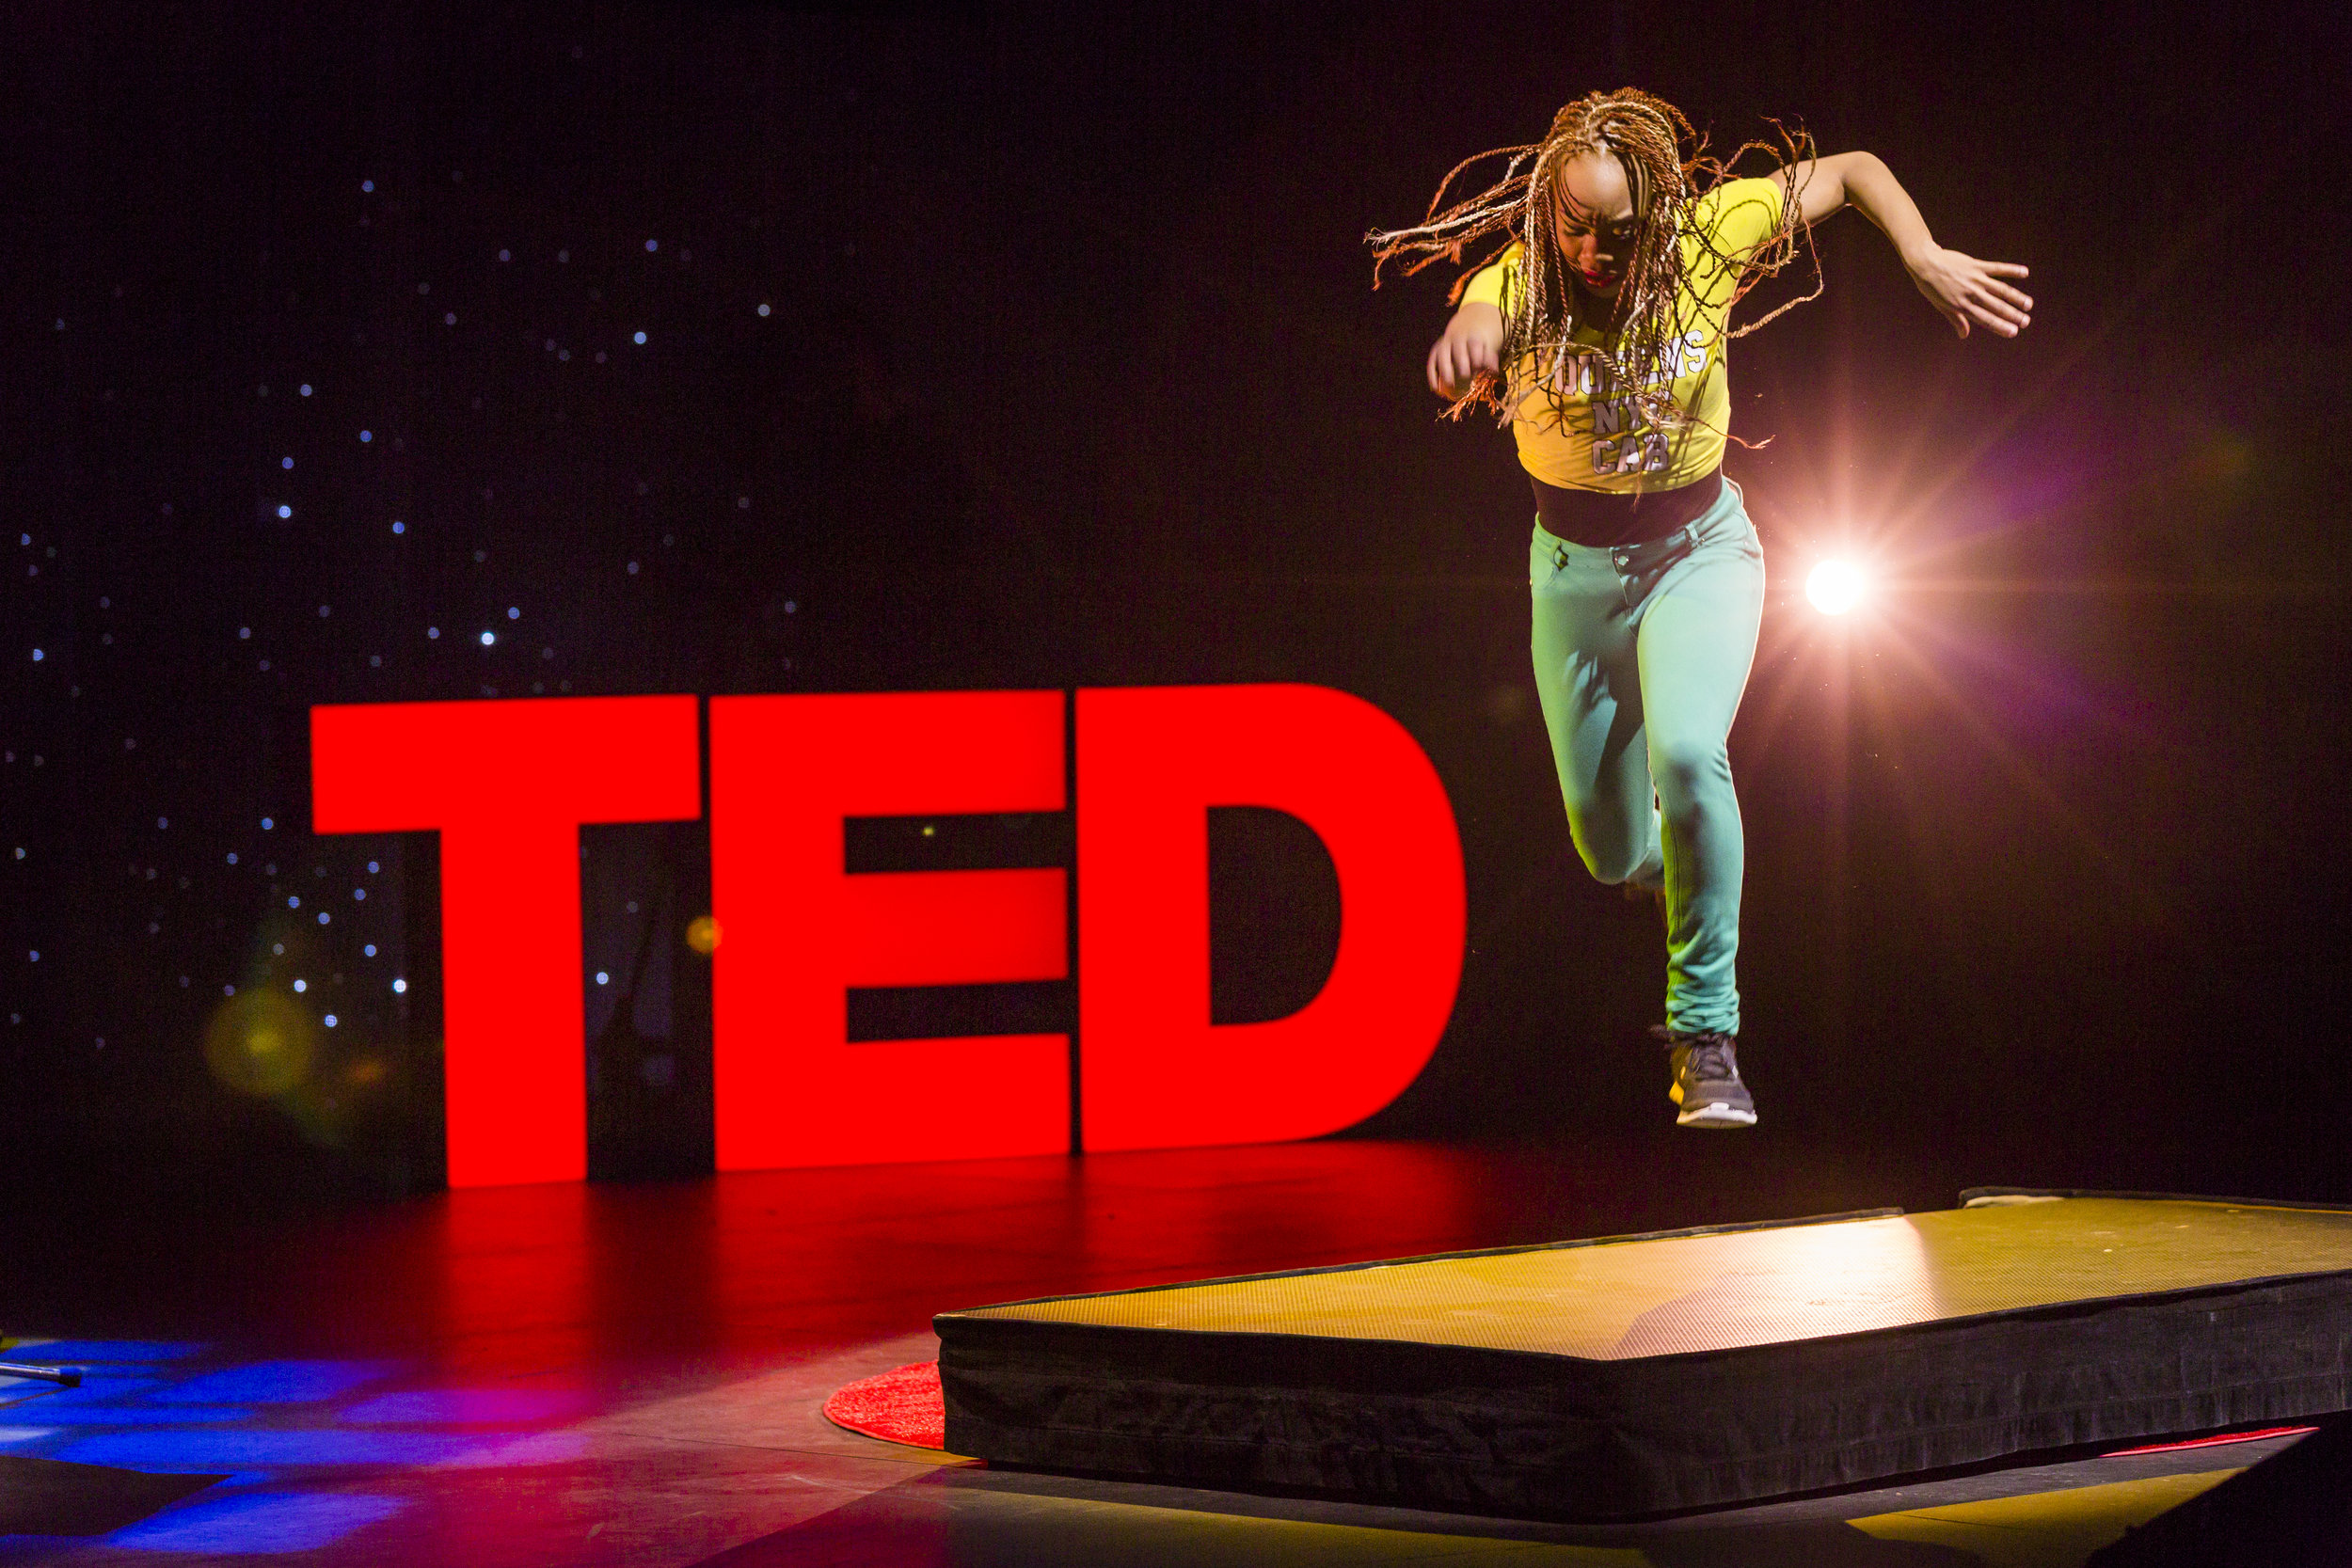 Camille at TED - Photo by Ryan Lash.jpg